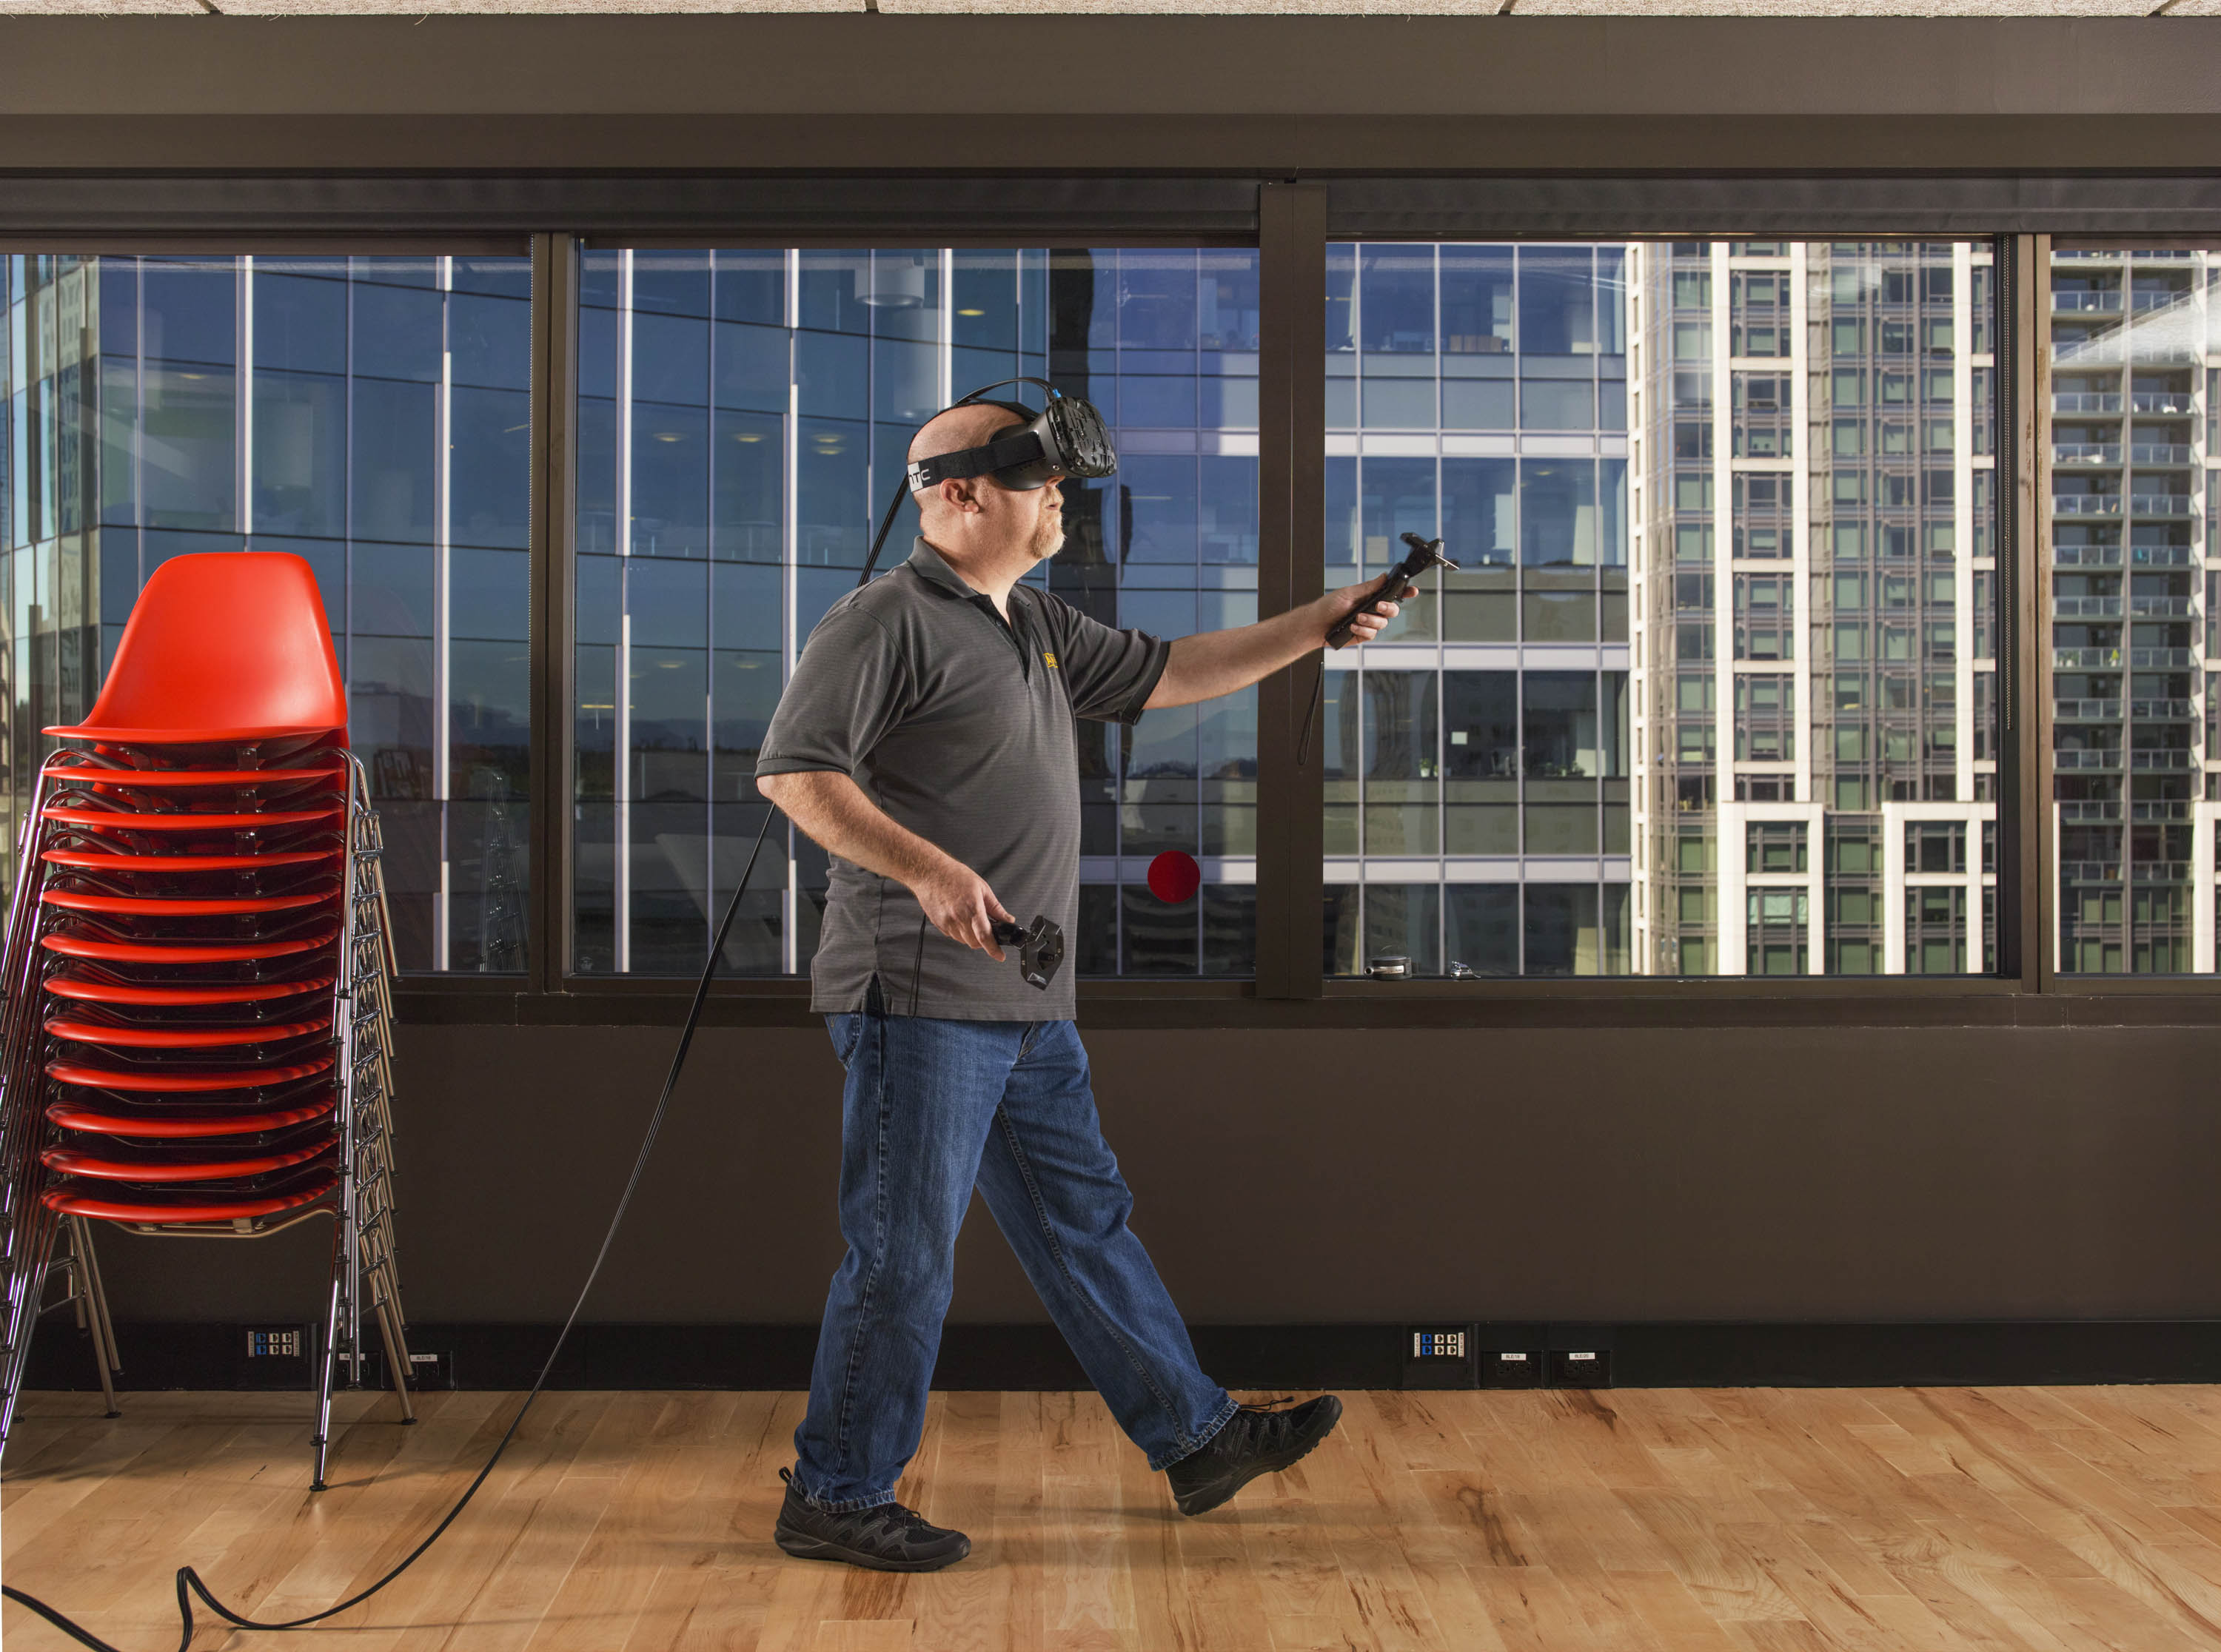 Ken Birdwell, a Valve engineer, demonstrates the Vive virtual-reality headset, which can track a user's locomotion, head movements and hand gestures.